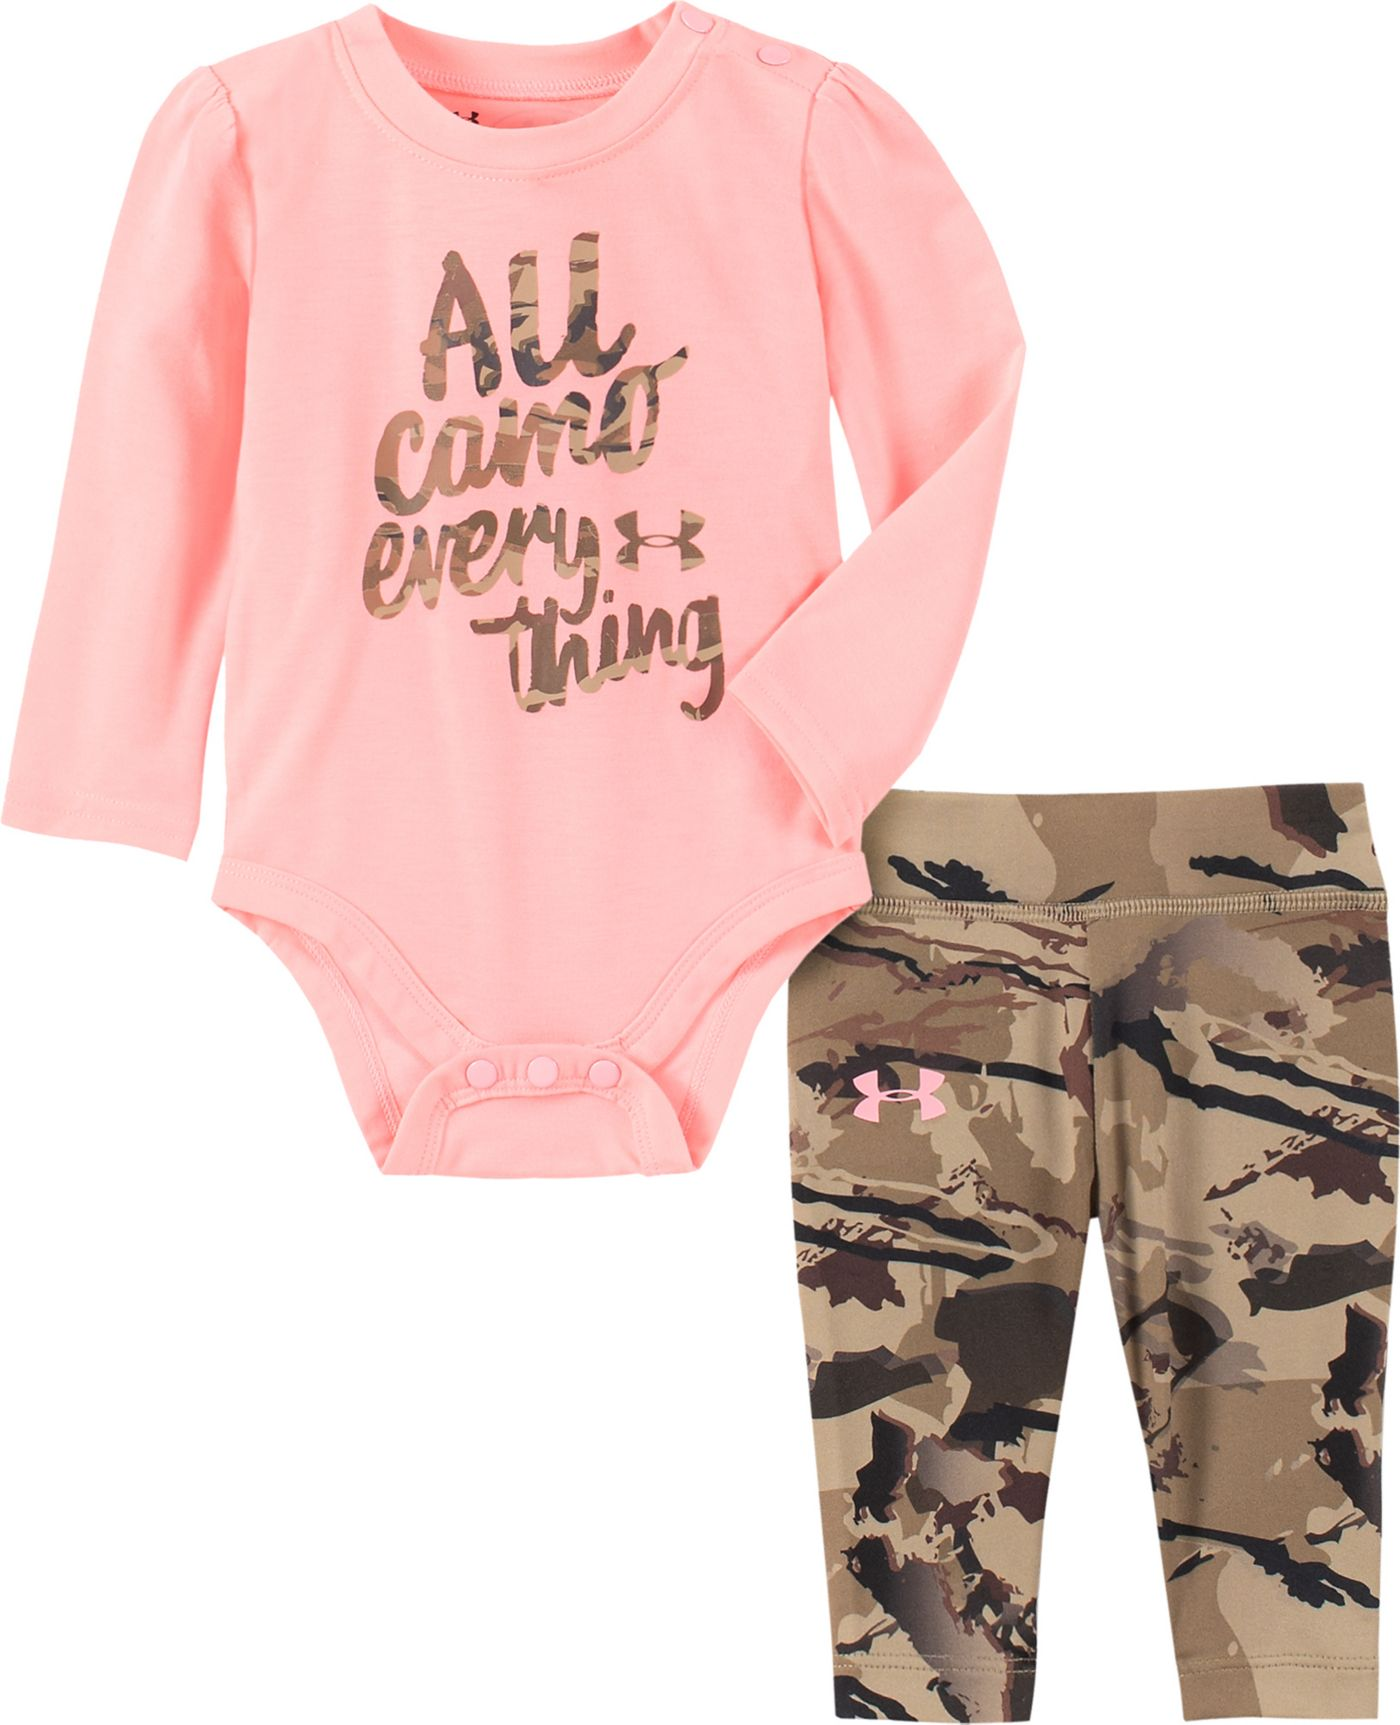 Under Armour Infant Girls' All Camo Everything Onesie and Pants Set